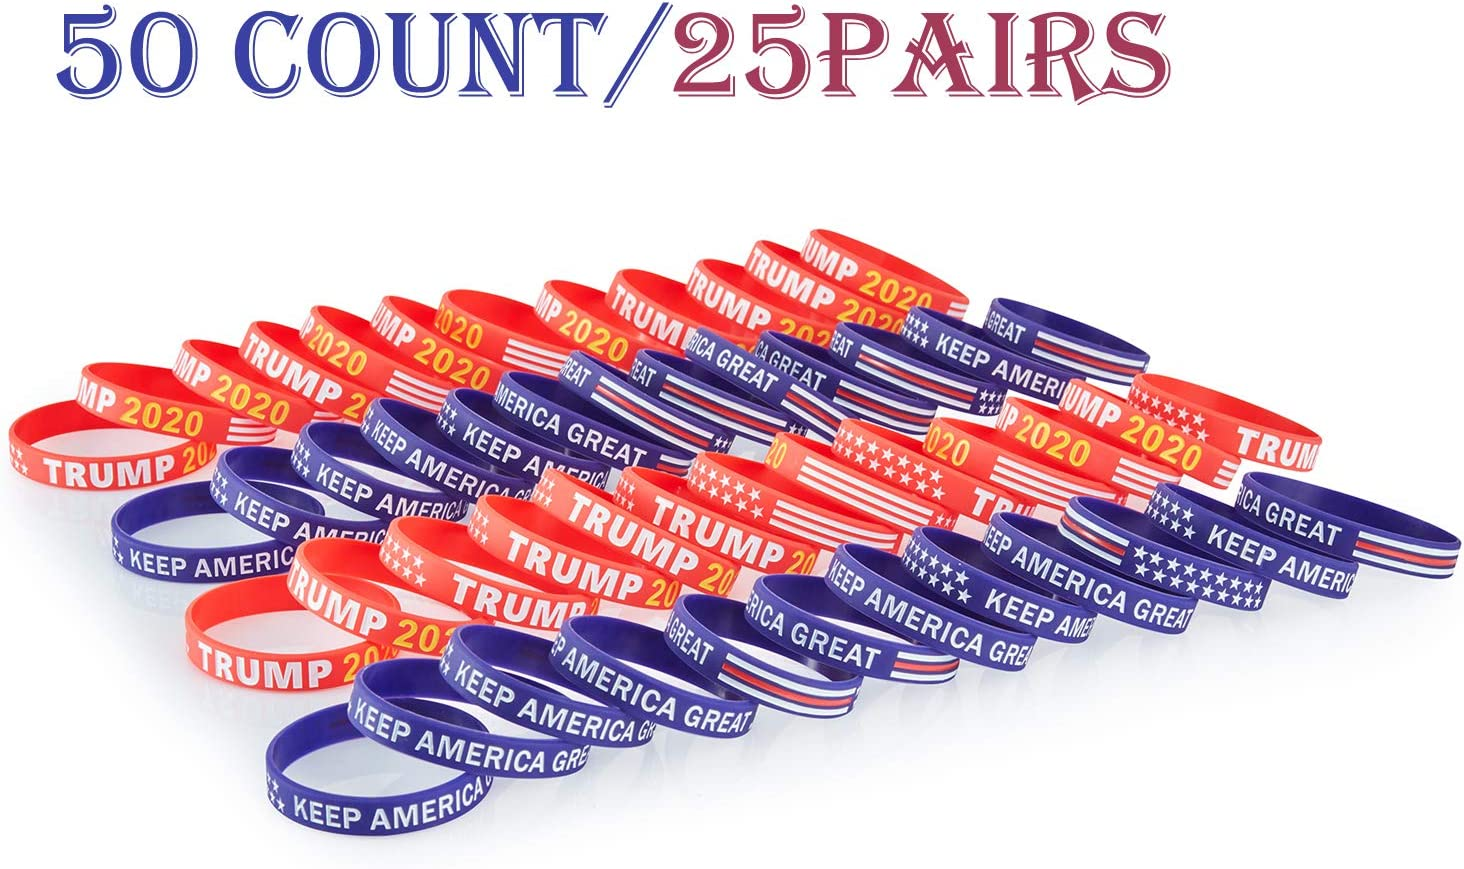 BRANDWINLITE TRUMP2020,Keep America Great,Pesidential Election Custom Made Rubber Silicone Bracelets Wristbands with American Flag